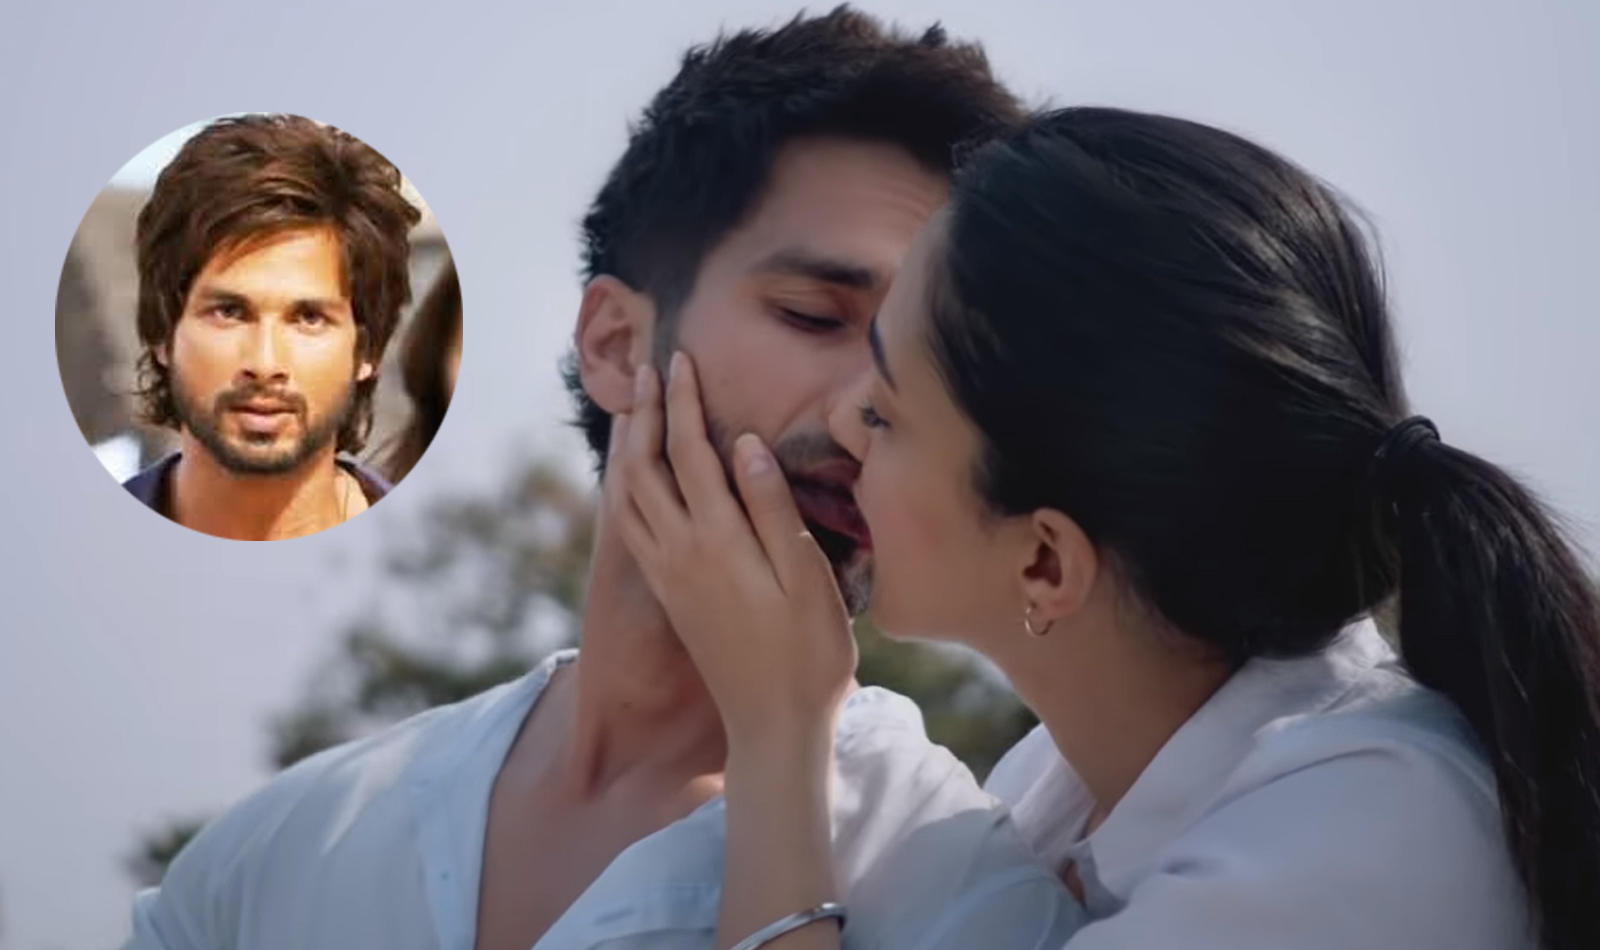 Shahid Kapoor gets angry when asked about kissing scenes with 1600x950